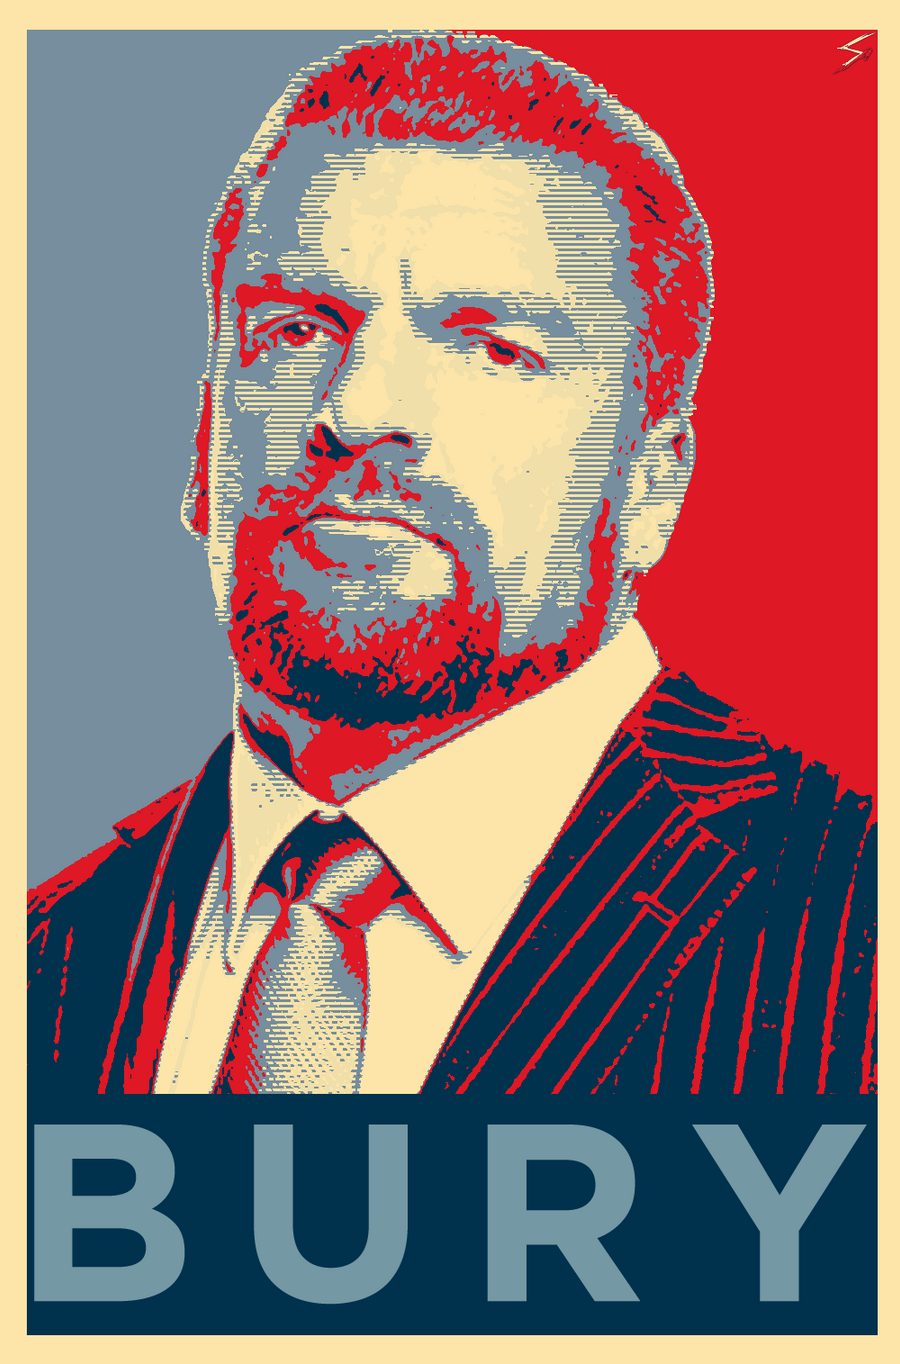 triple h bury poster obama s hope style by skilled97 on deviantart